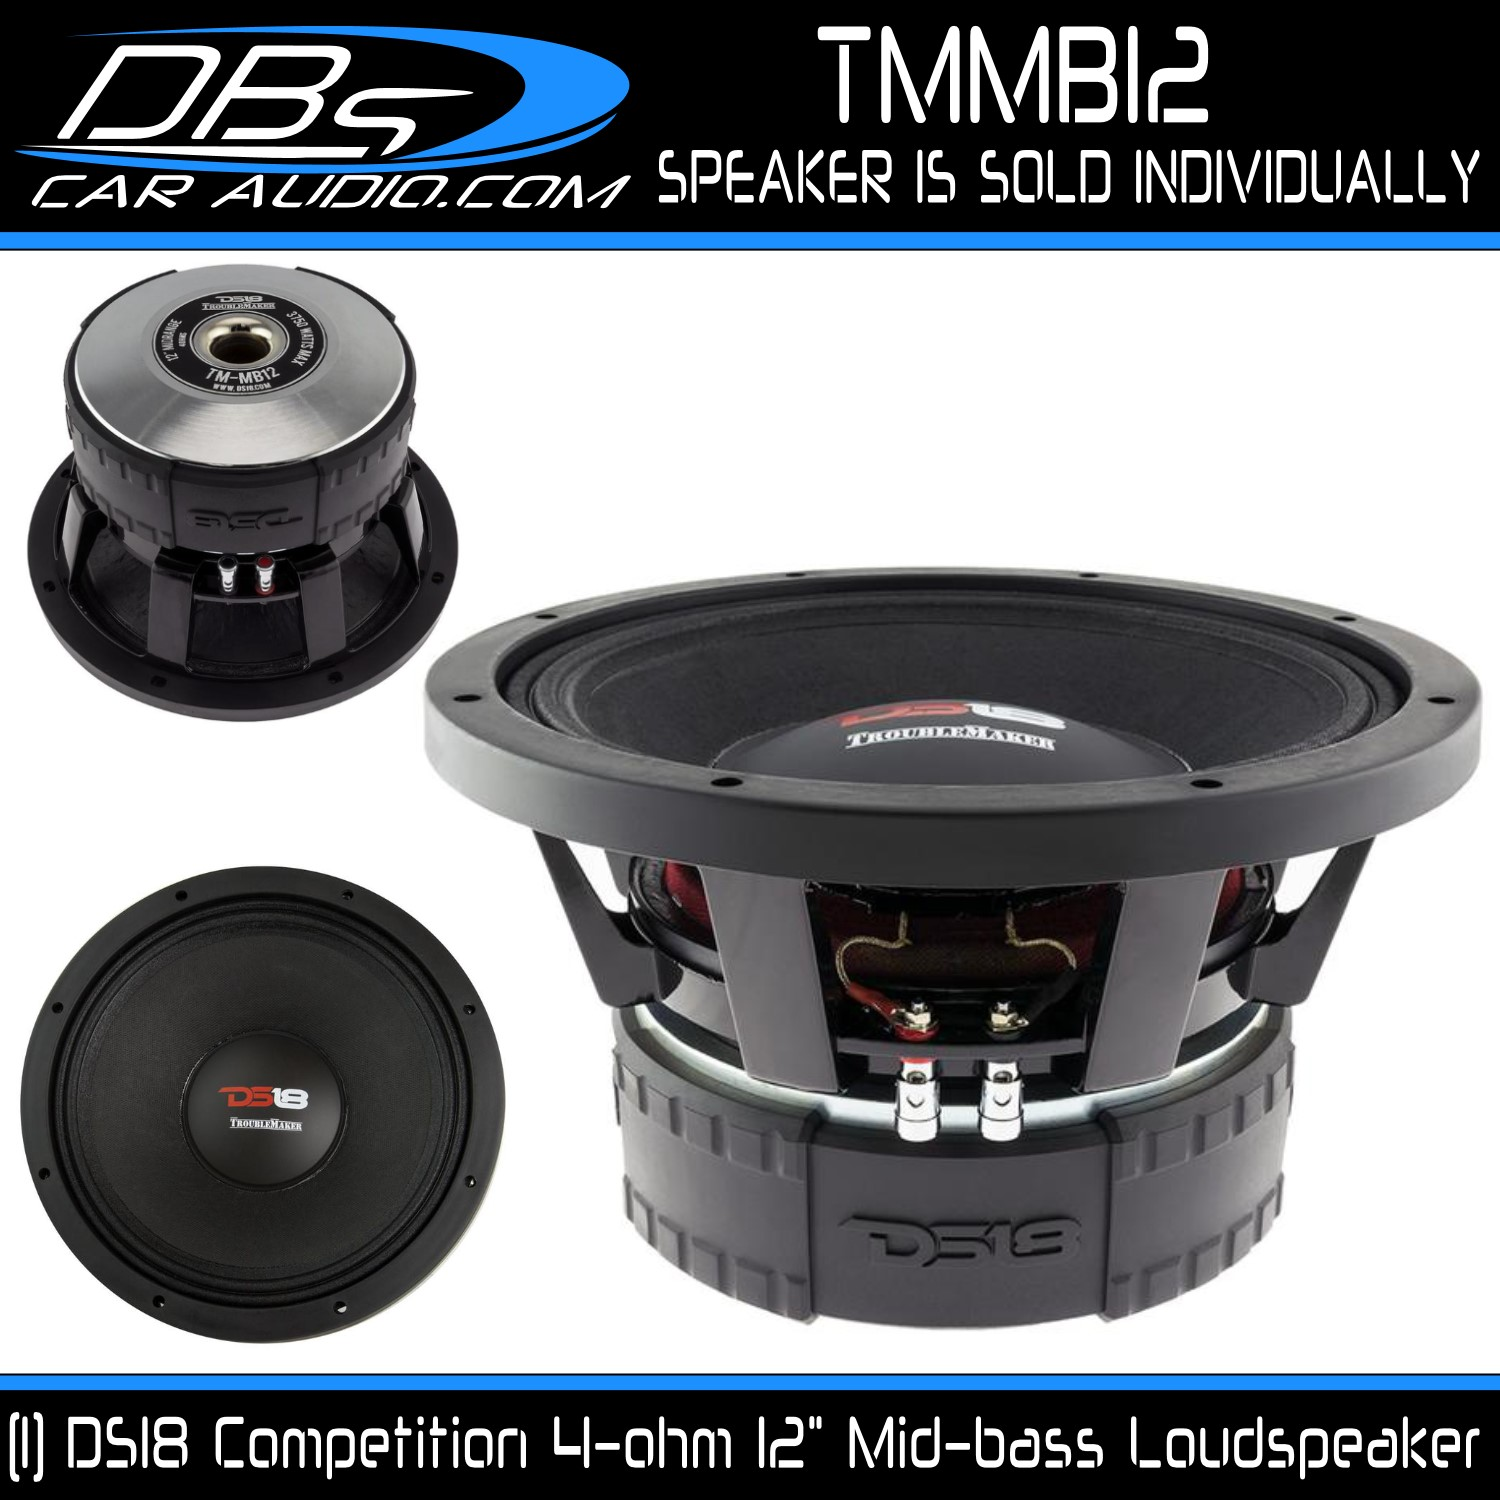 Ds18 Tmmb12 2000w Rms 3750w Max 12 Midbass Woofer With A Single 4 Coil Device And Speaker Using On Wiring Speakers Dual Voice Quick View